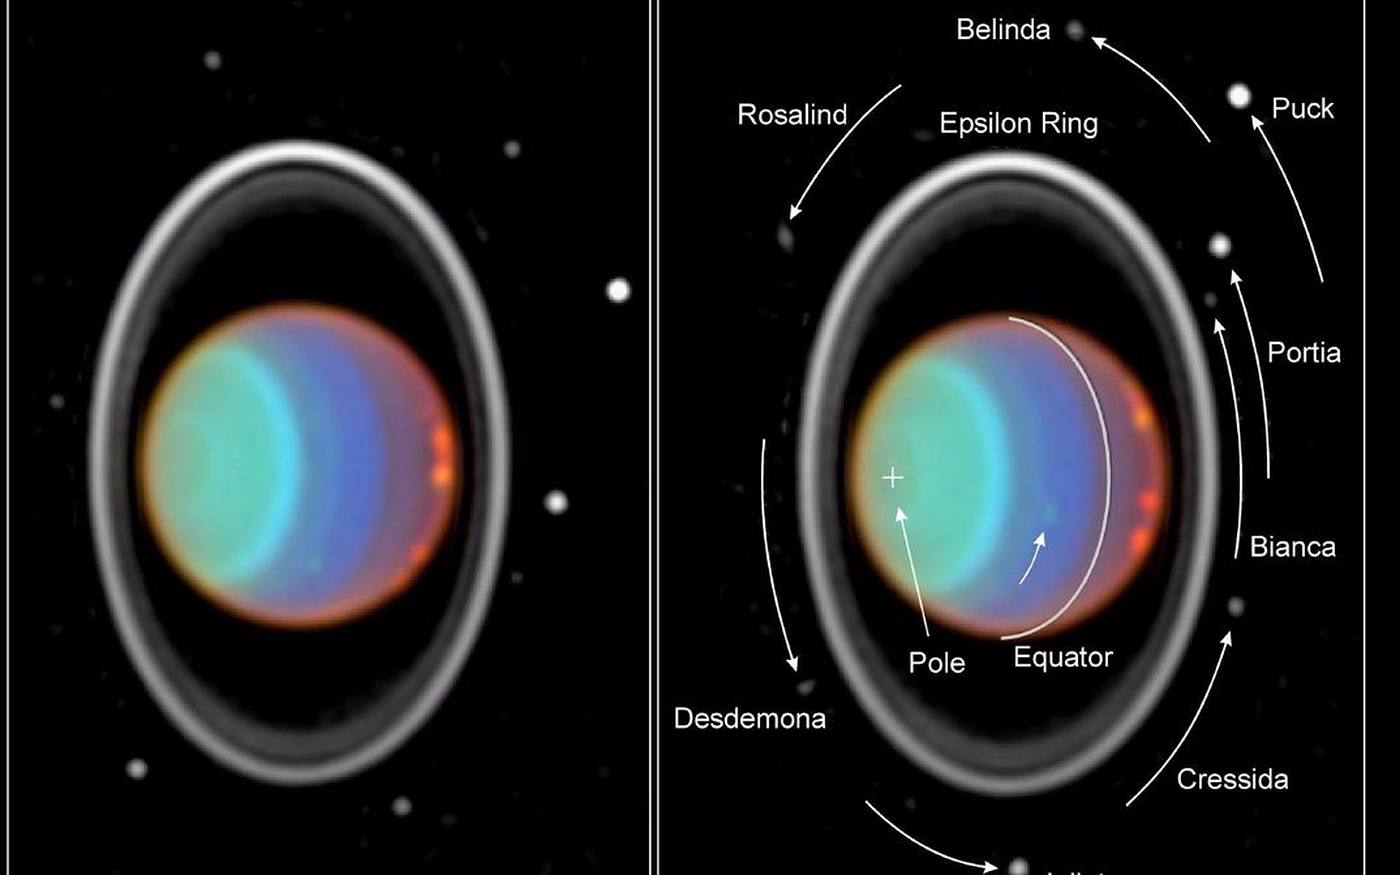 Taking its first peek at Uranus, NASA Hubble Space Telescope's Near Infrared Camera and Multi-Object Spectrometer (NICMOS) has detected six distinct clouds in images taken July 28, 1997. Hubble also captured eight moons in this image. Image Credit: NASA/JPL/STScI